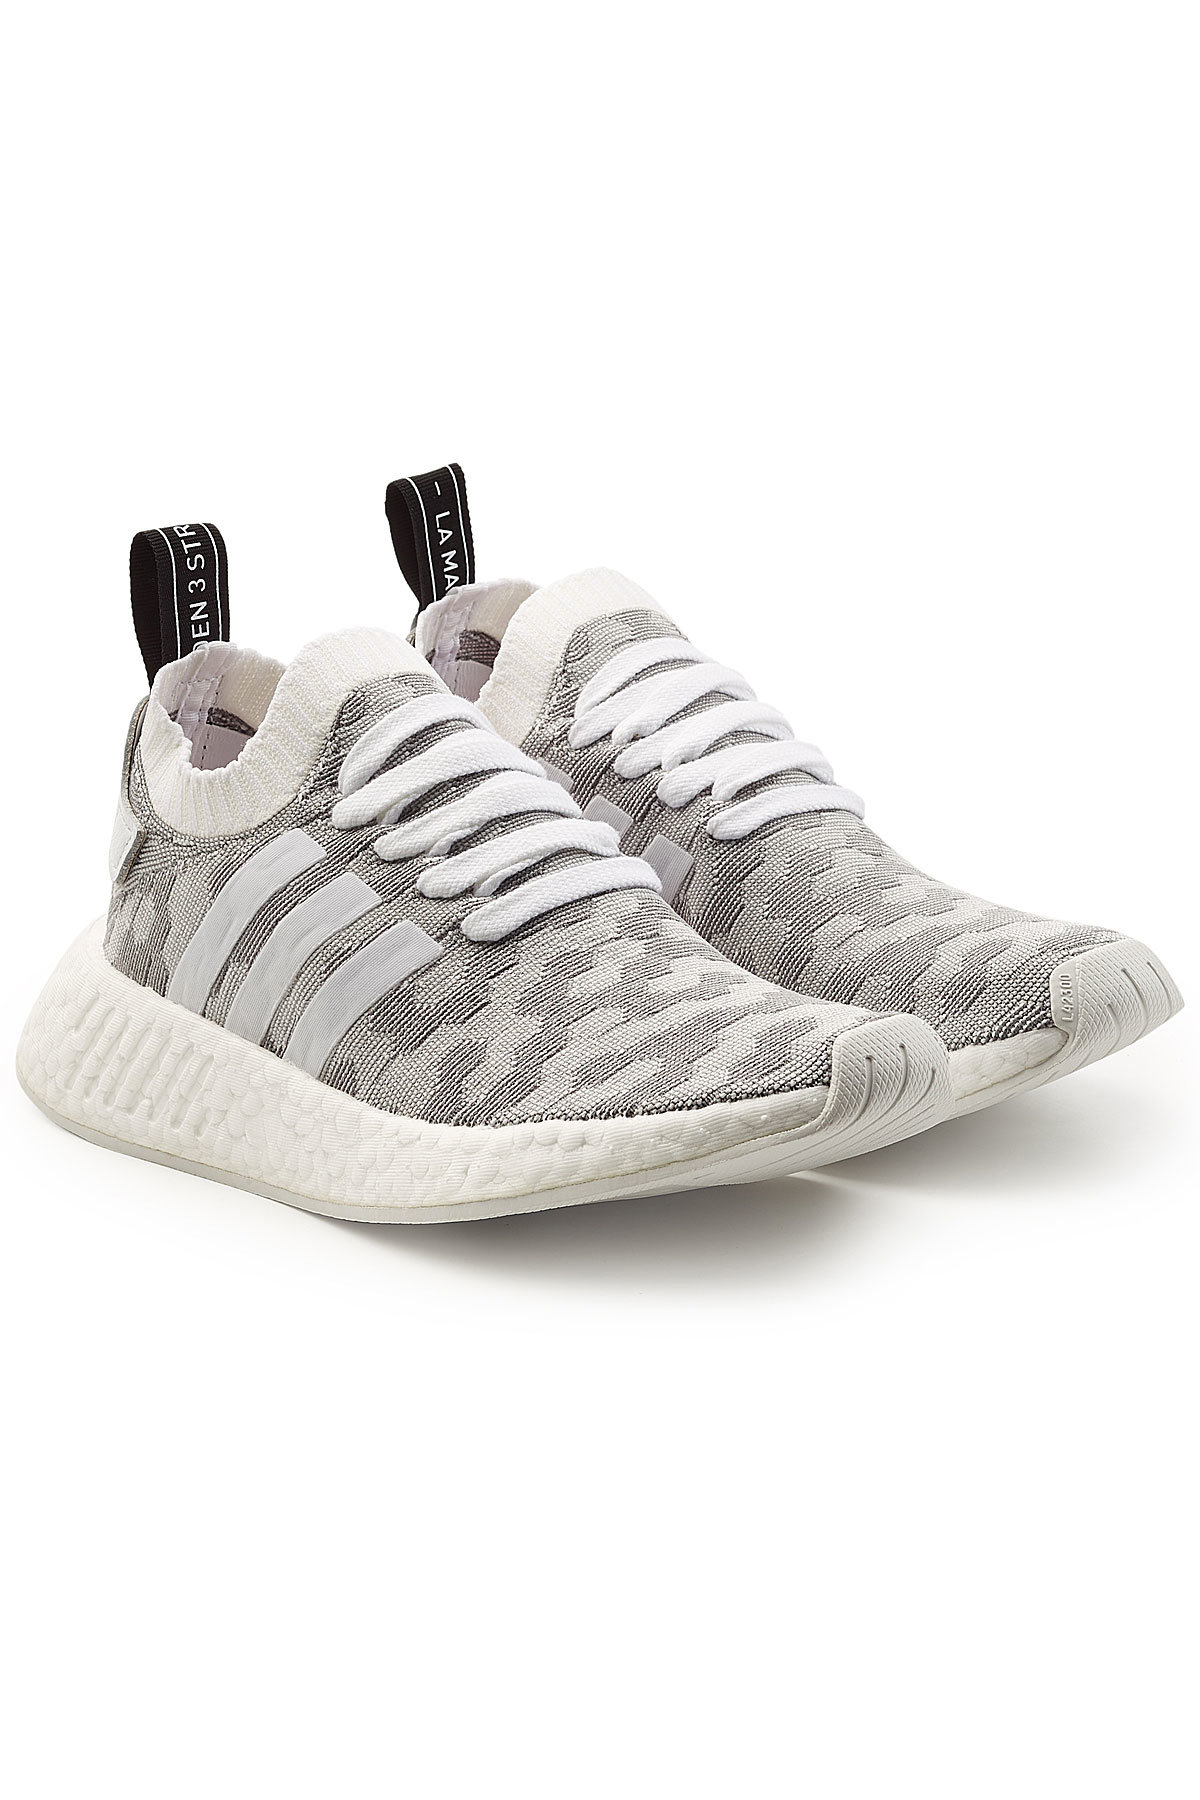 adidas NMD R2 Primeknit Sneakers Gr. UK 5 YQvMT